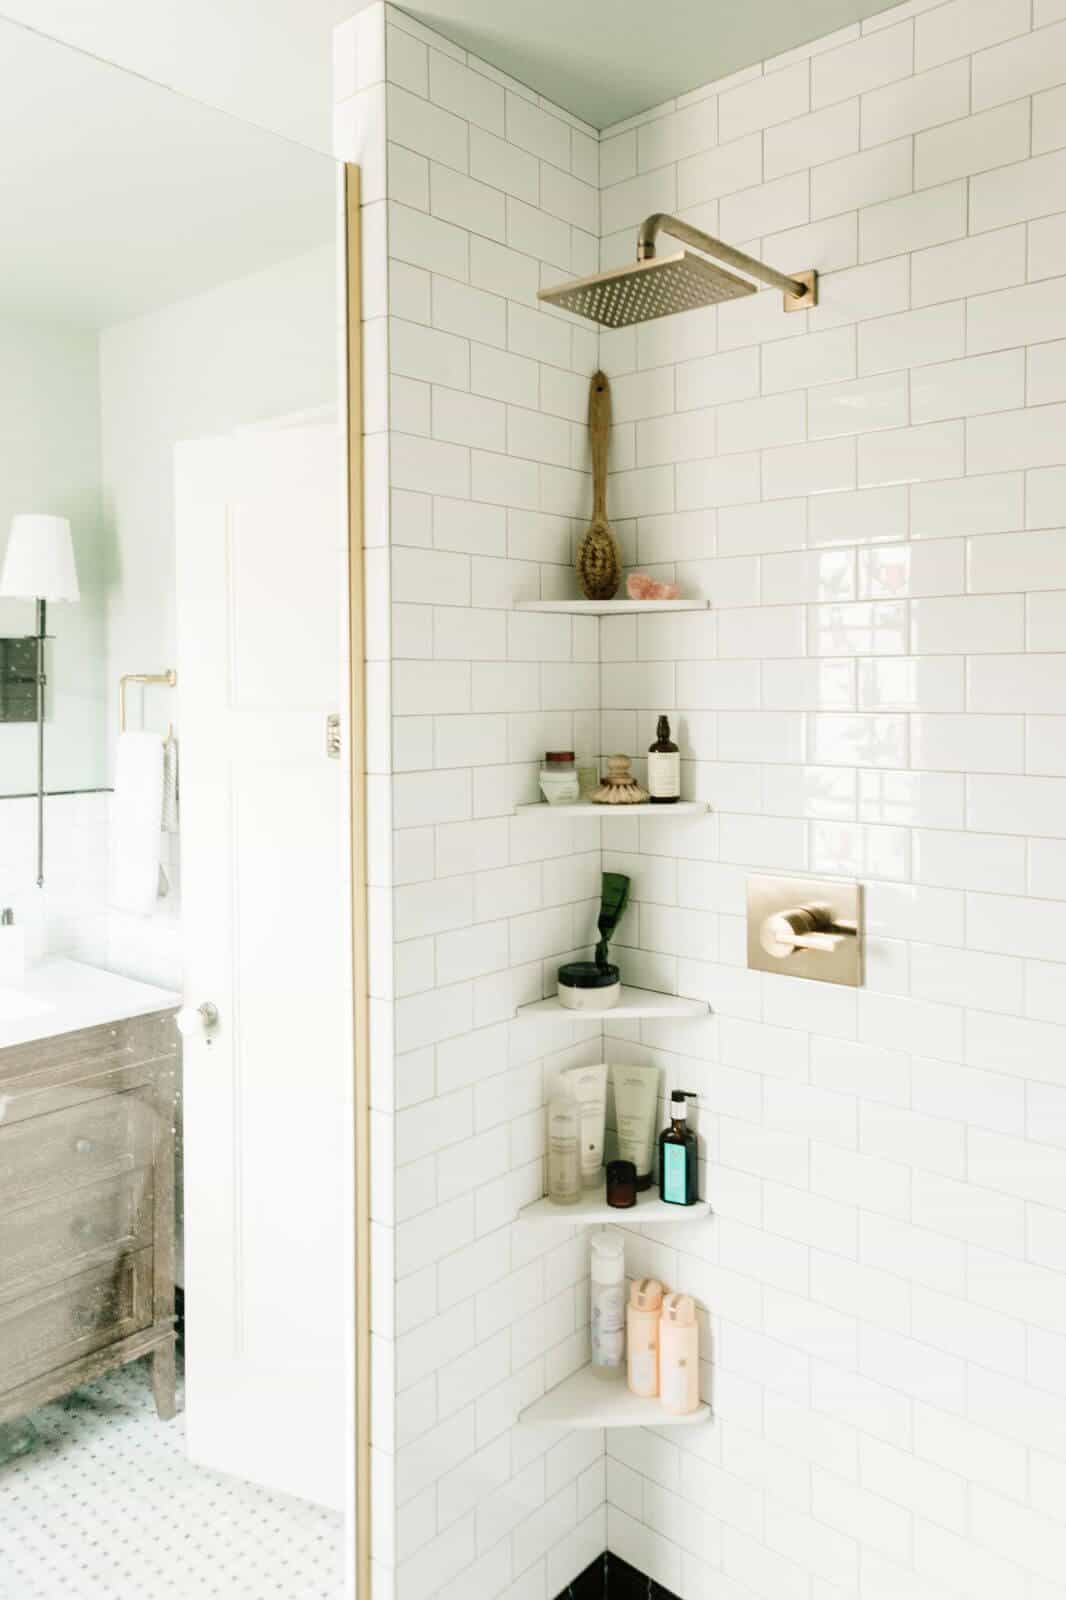 corner shelving concept in the shower